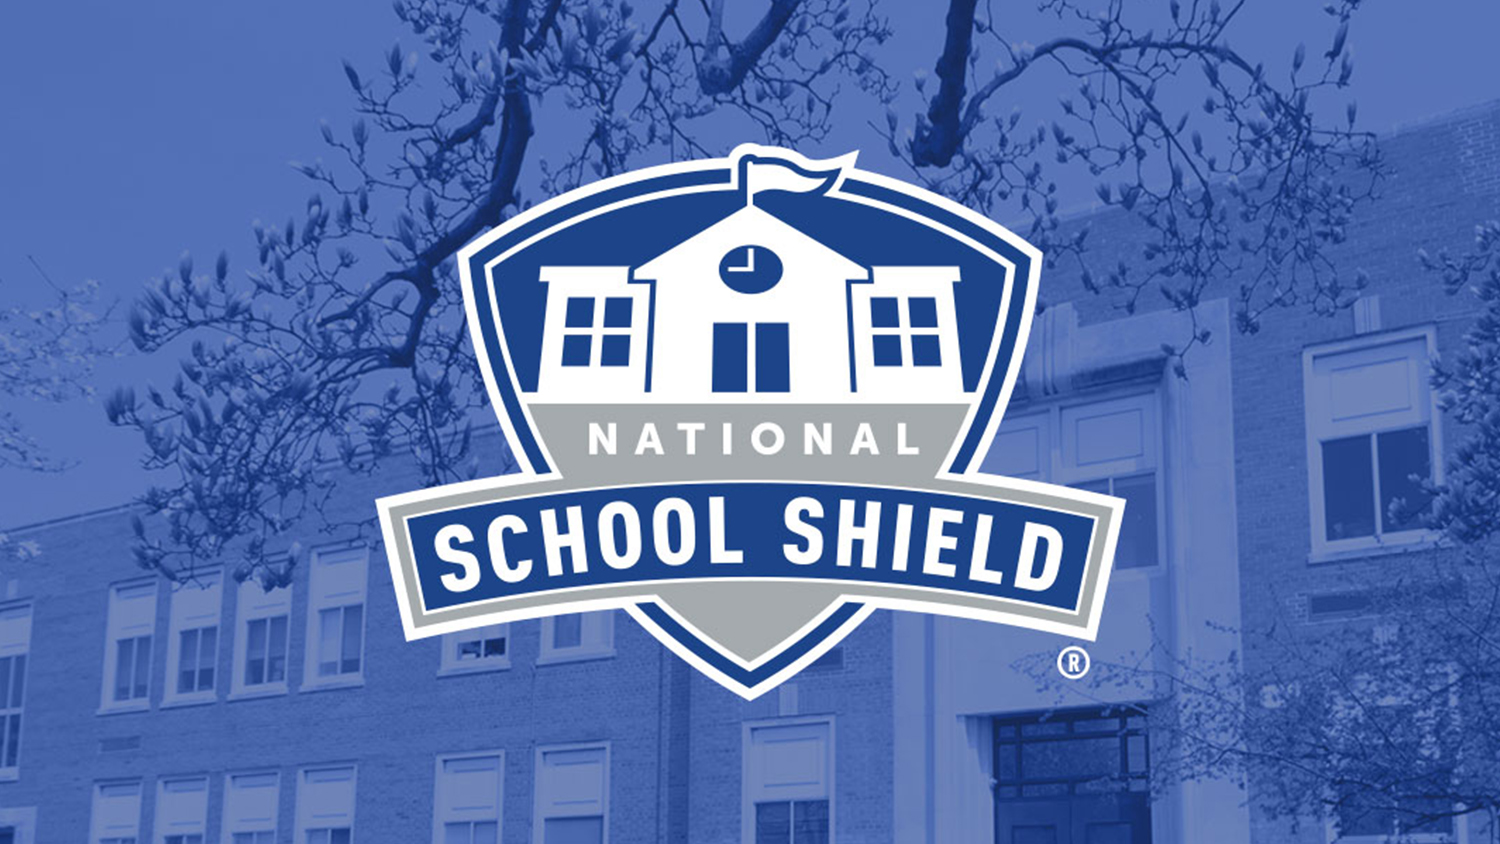 Fairbanks Daily News-Miner: Learn about National School Shield